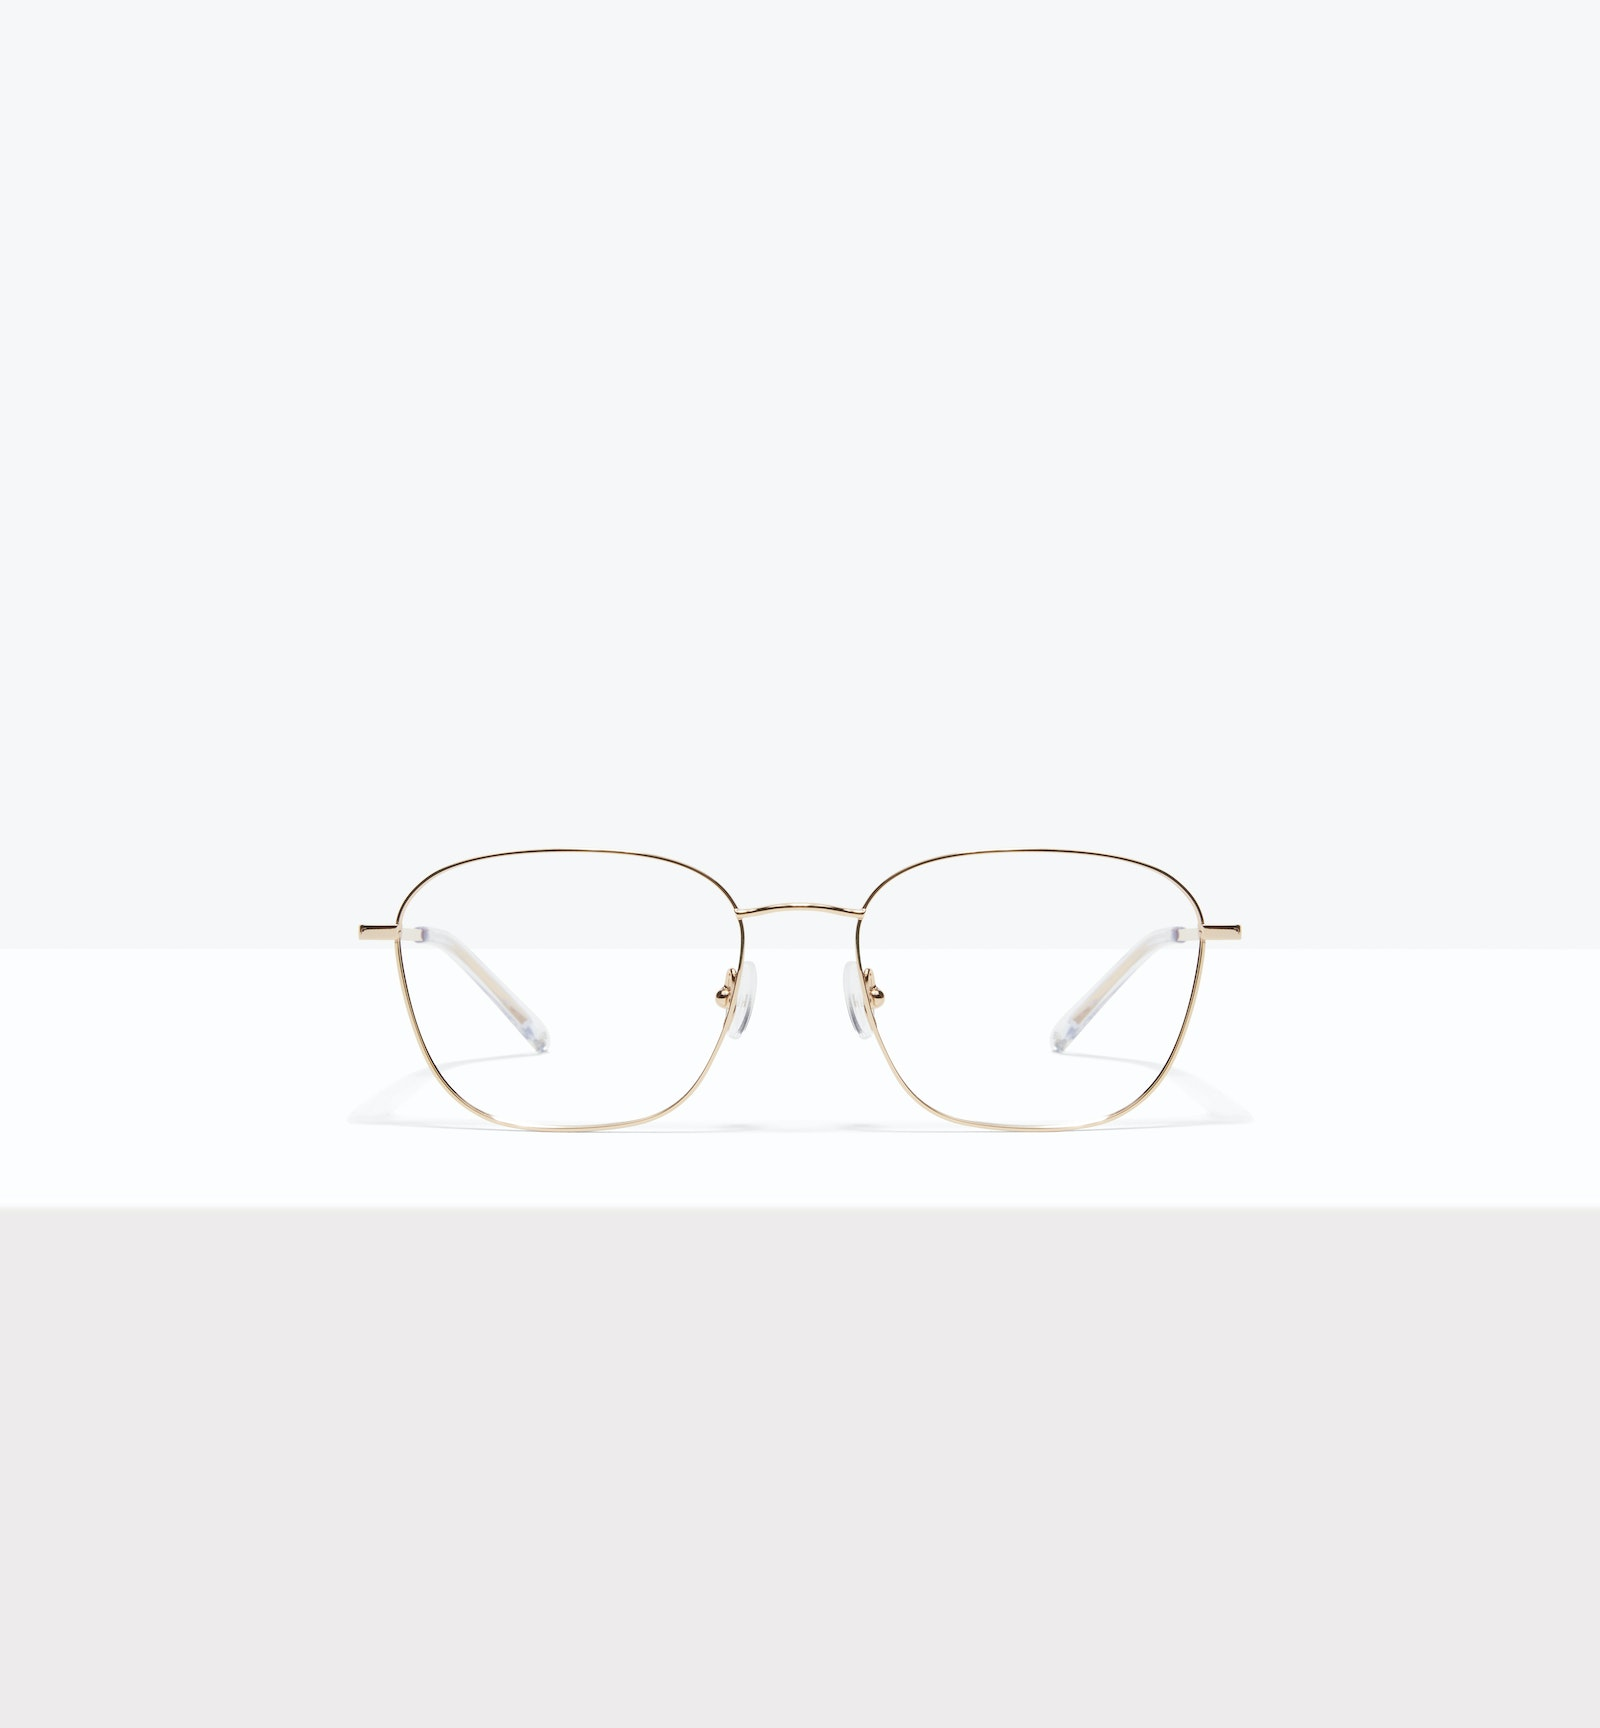 Affordable Fashion Glasses Square Eyeglasses Women Lane Gold